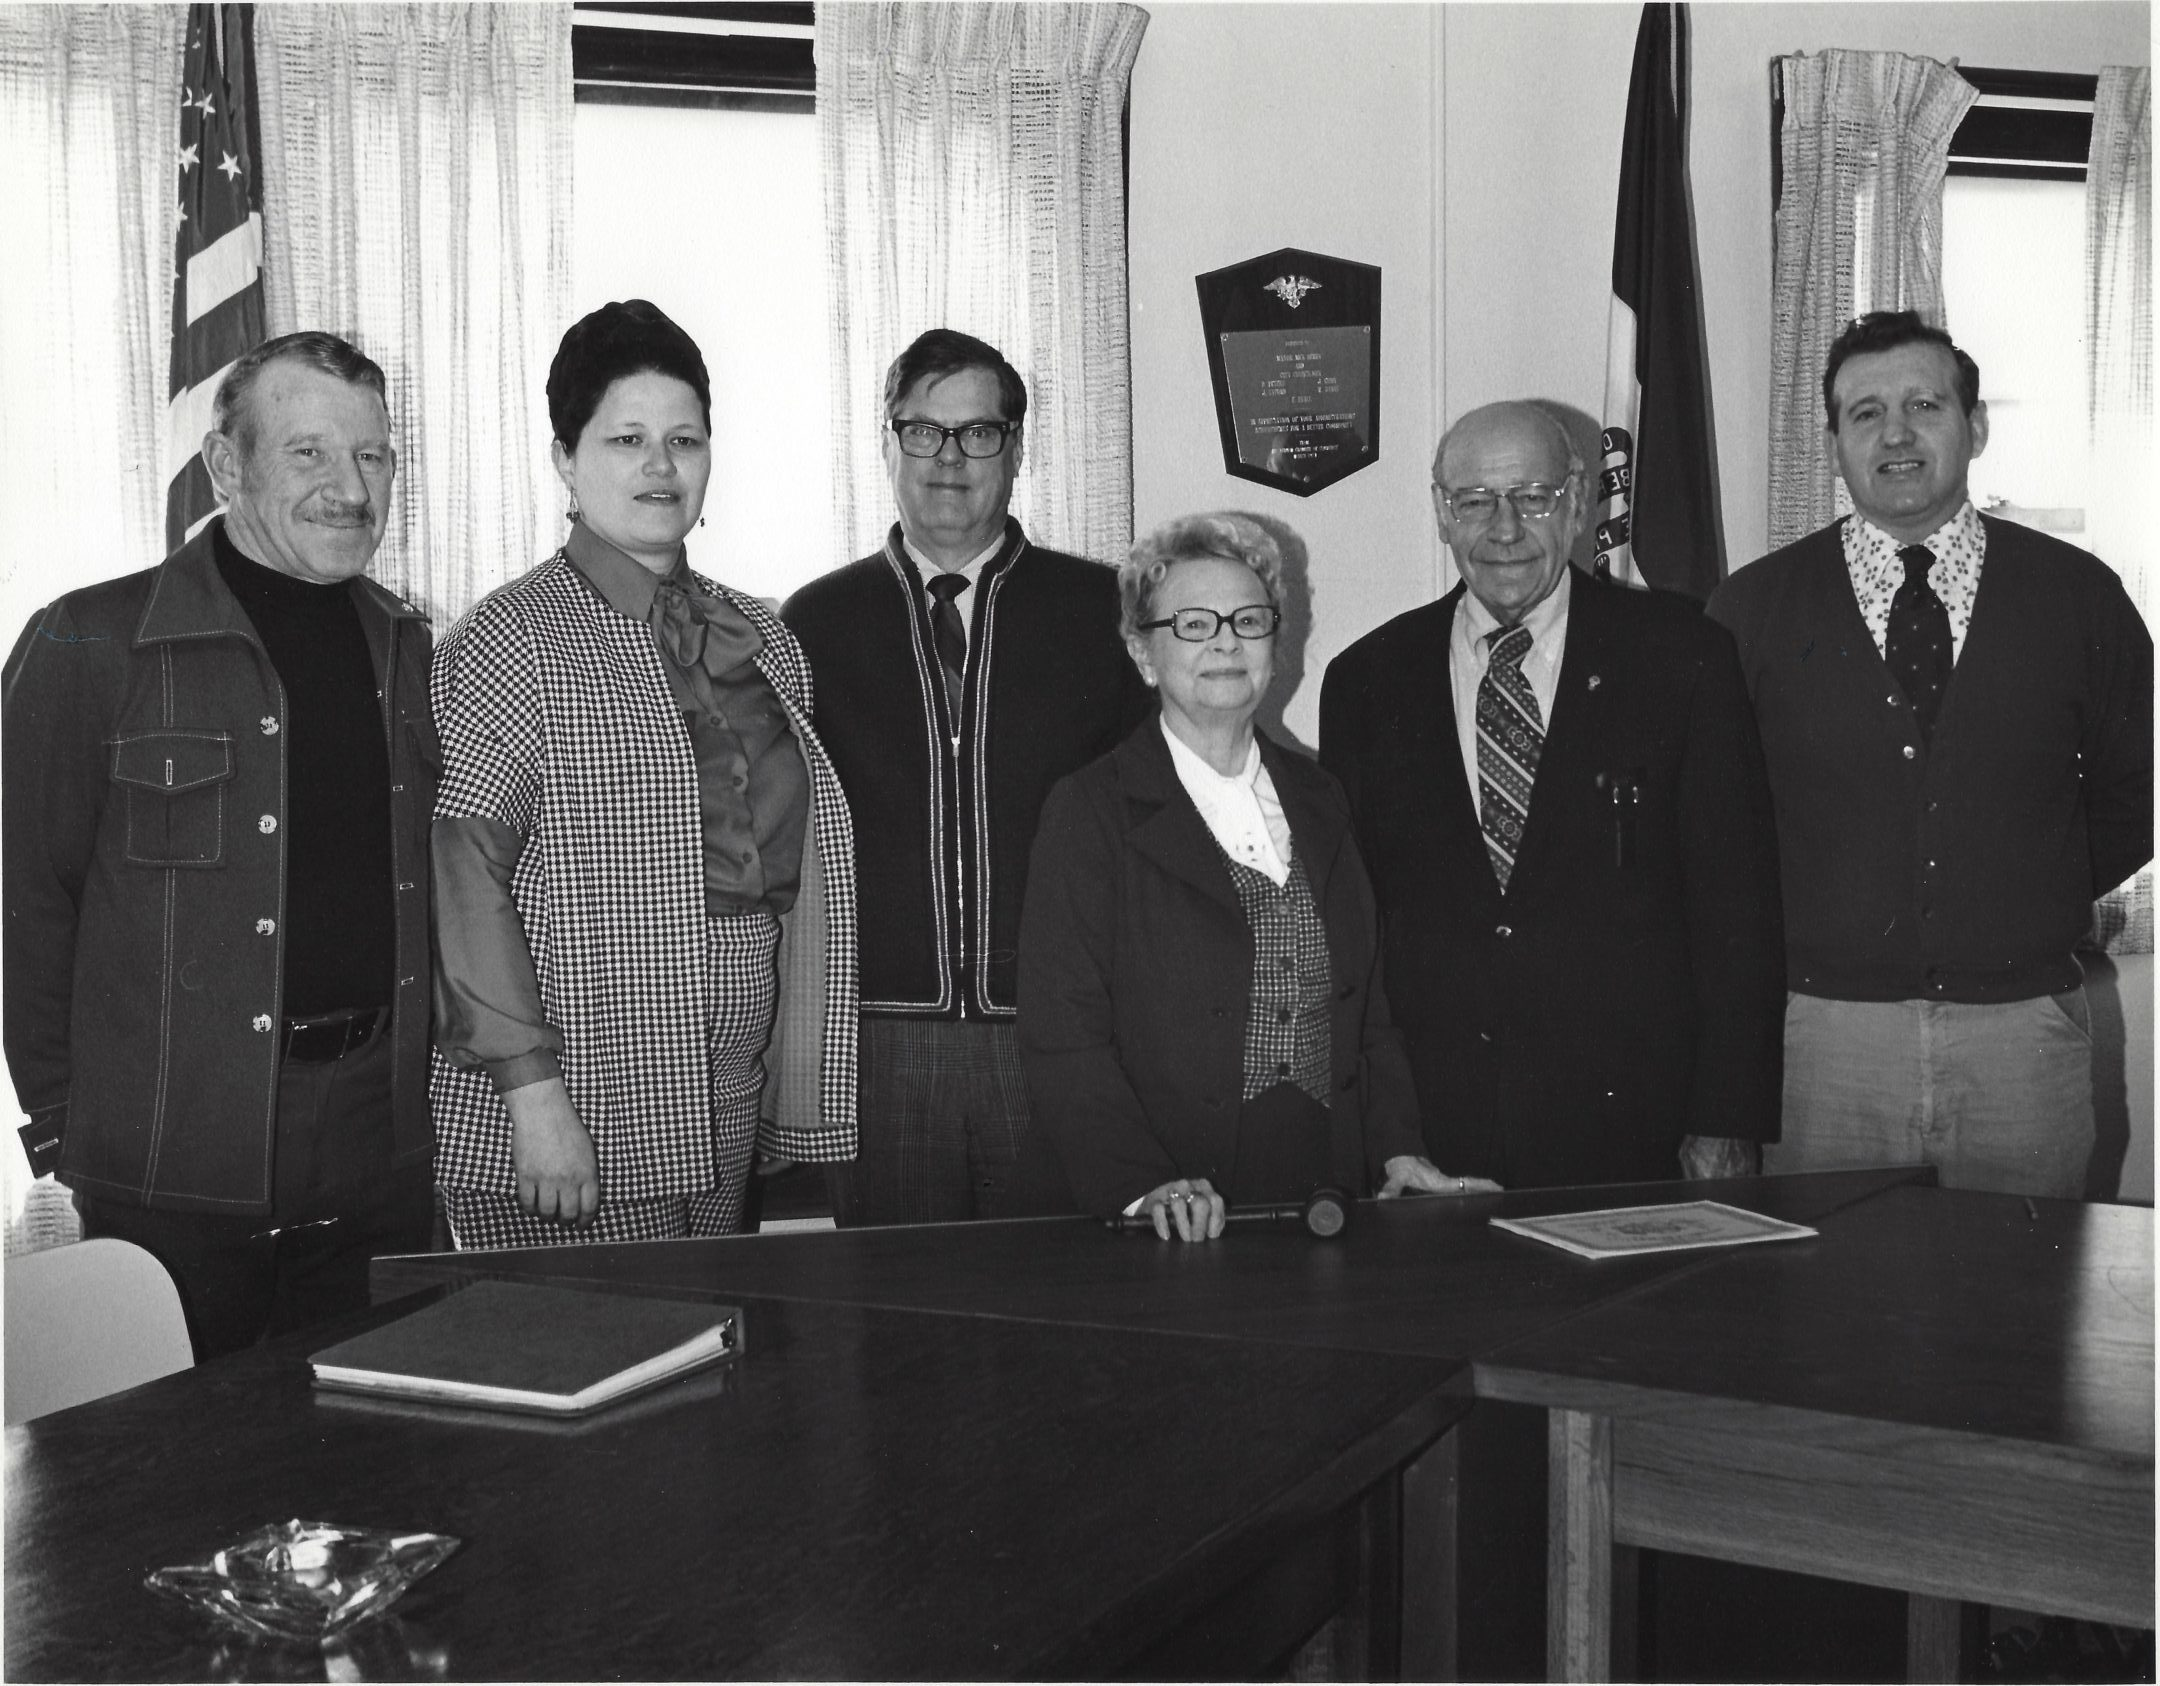 Photo of the City Council 1976-77